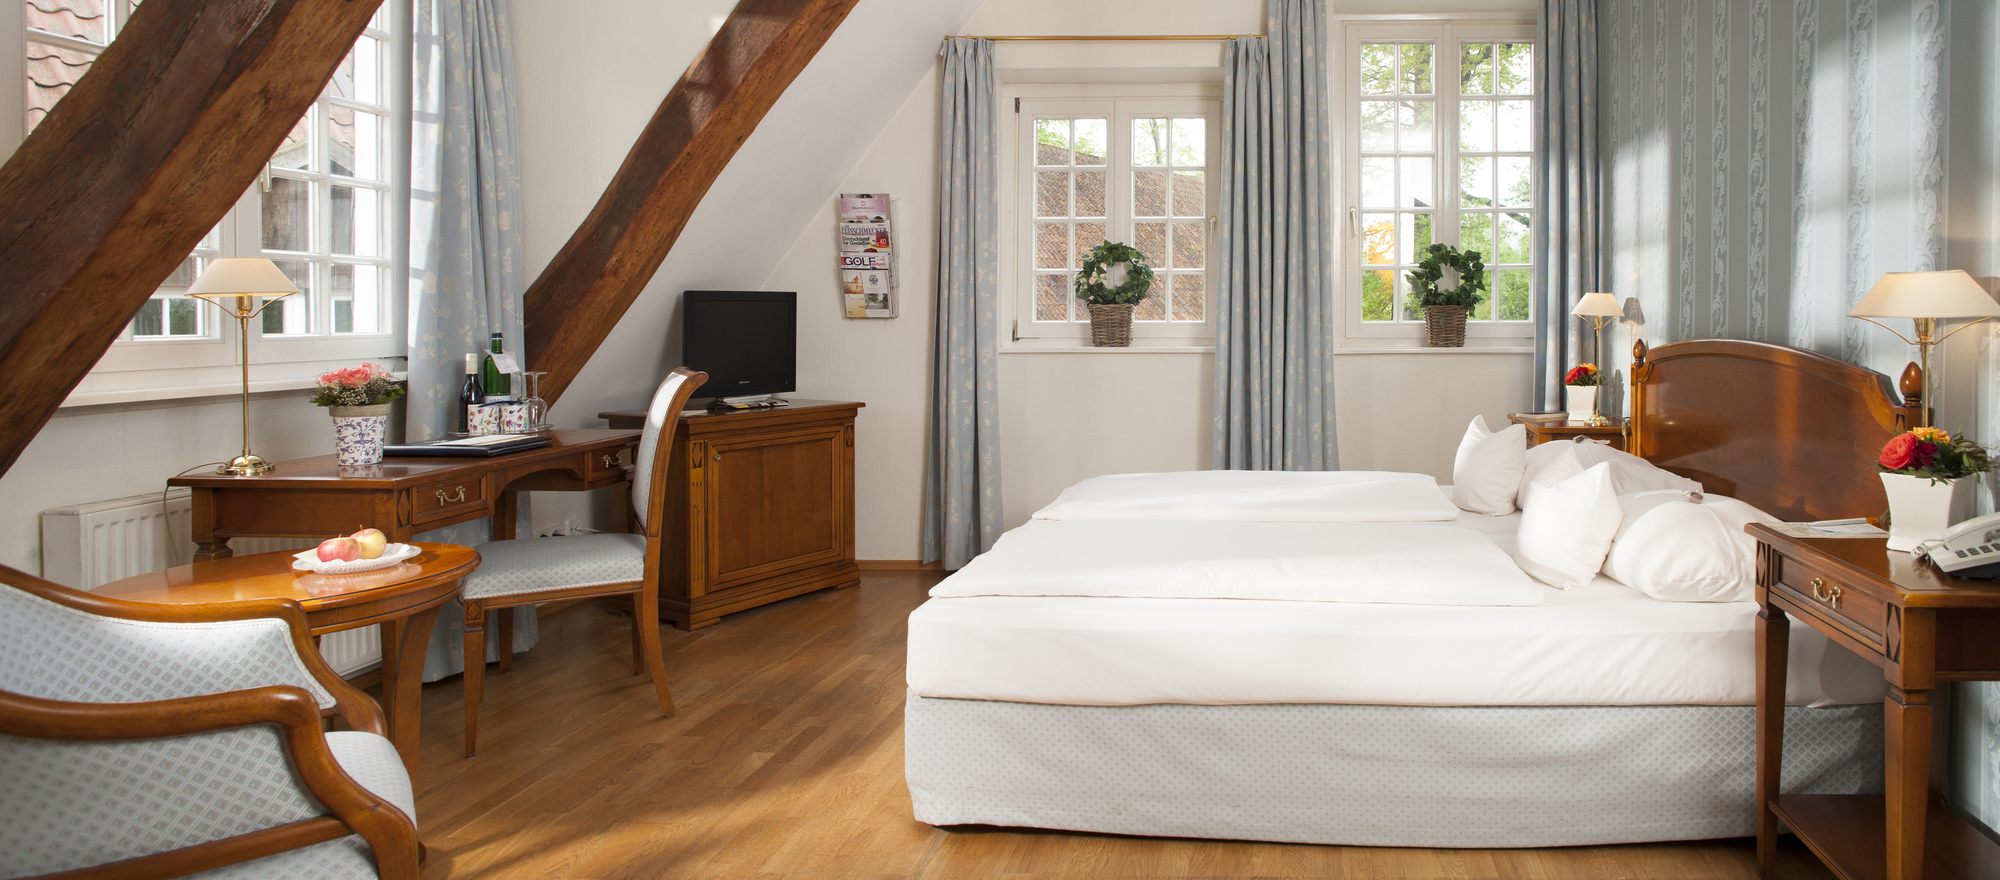 Spacious rooms with wood at the 4-star-superior hotel Ringhotel Landhaus Eggert in Muenster